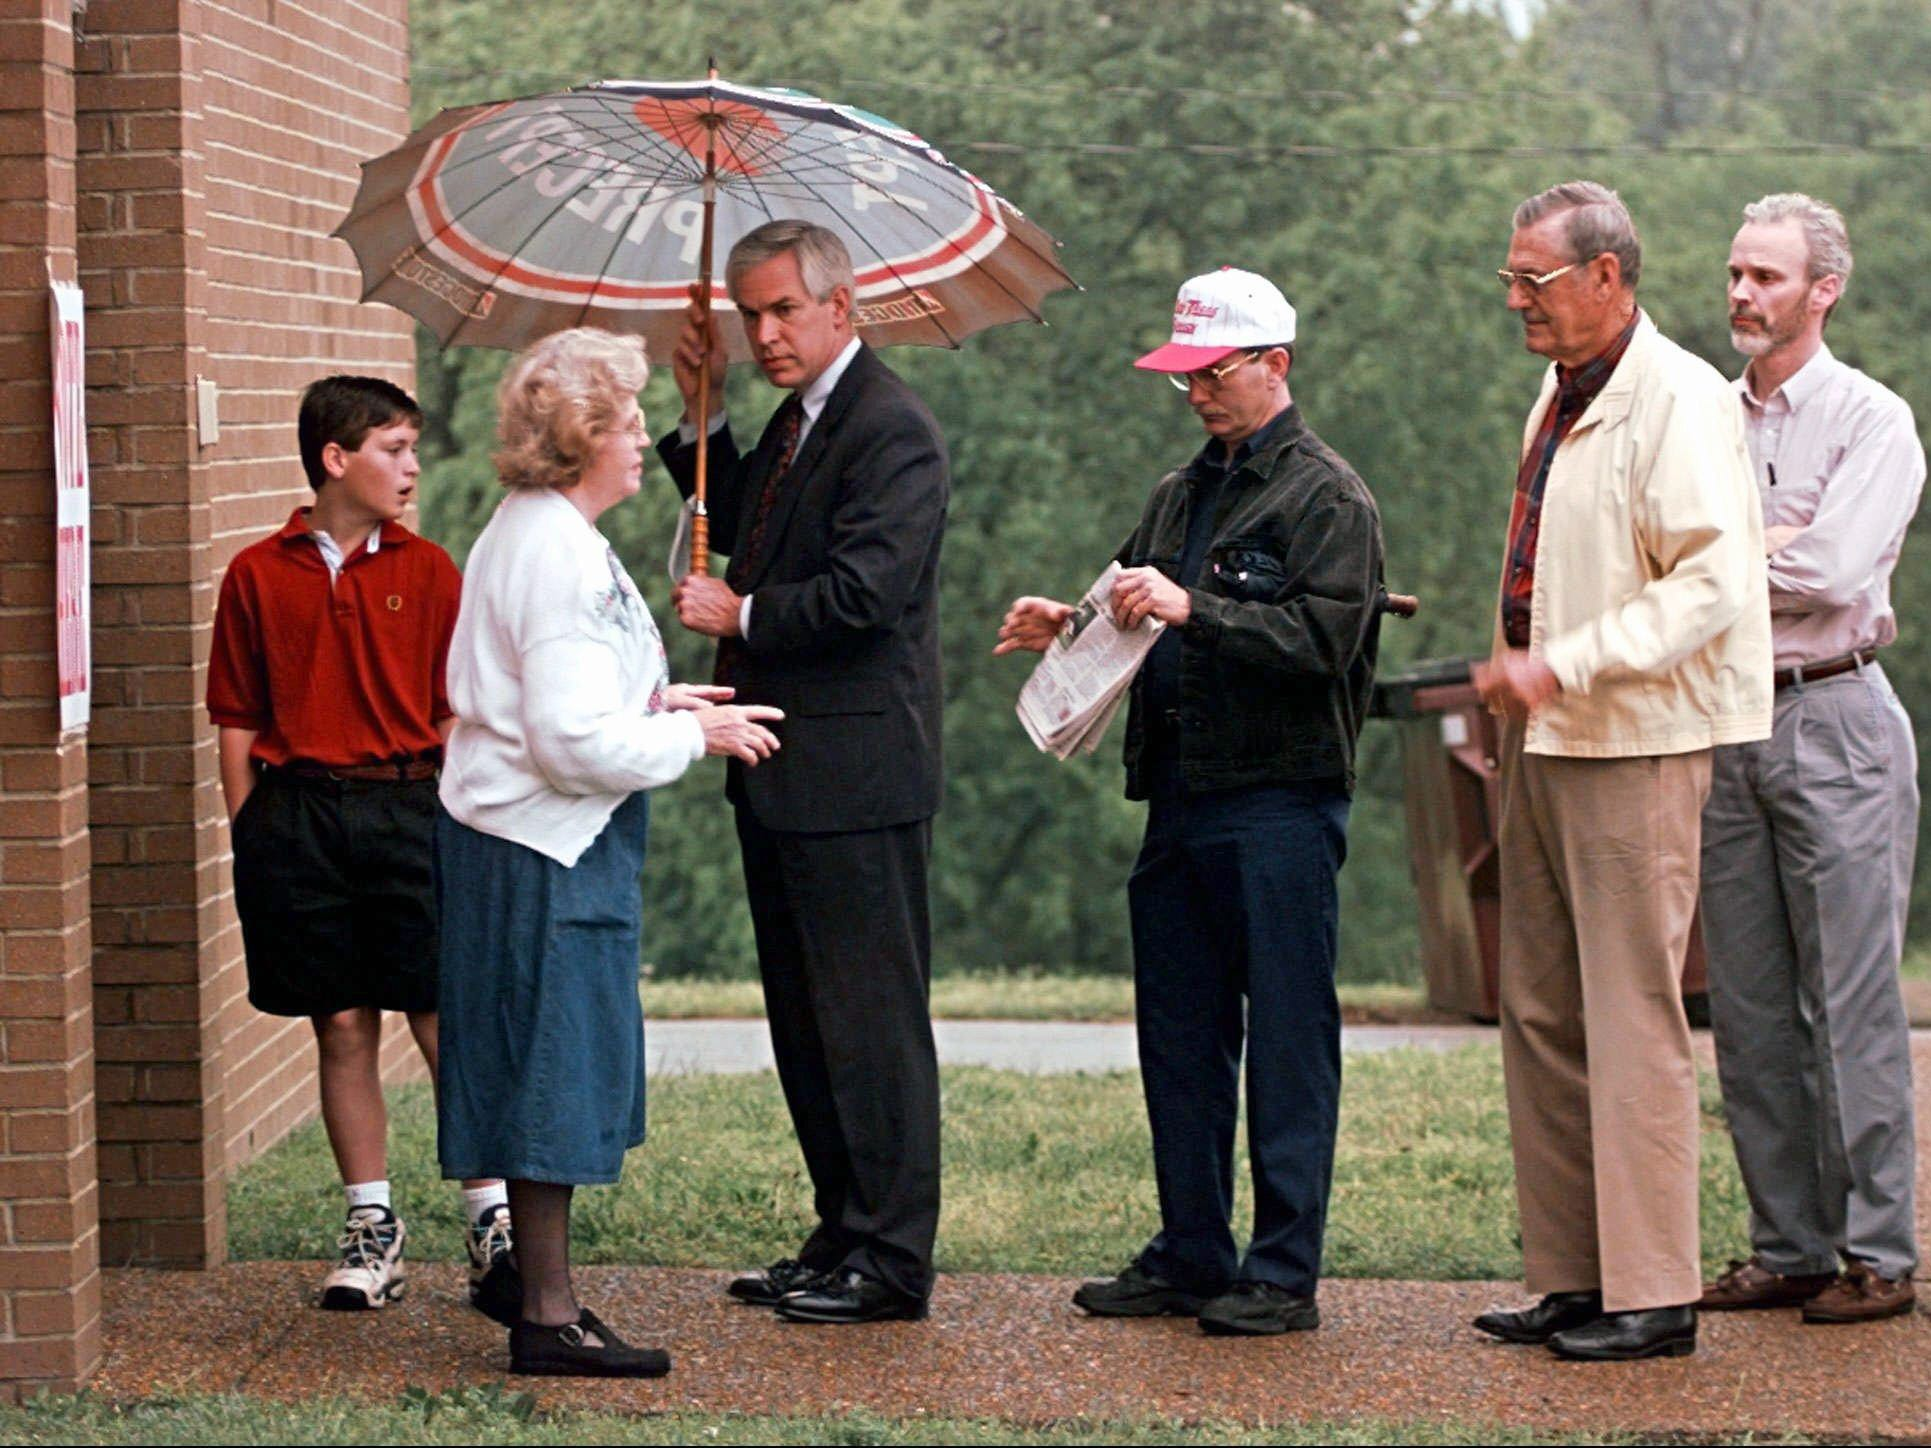 Glenda Whitaker, second from left, a poll worker at Holy Trinity Greek Orthodox Church in Nashville, Tenn., tells voters to come in out of the rain as they wait for the doors to open at 7:00 a.m. May 7, 1996. Nashville voters are deciding if public money is going to be used to help build a stadium so the Houston Oilers can move to Nashville.